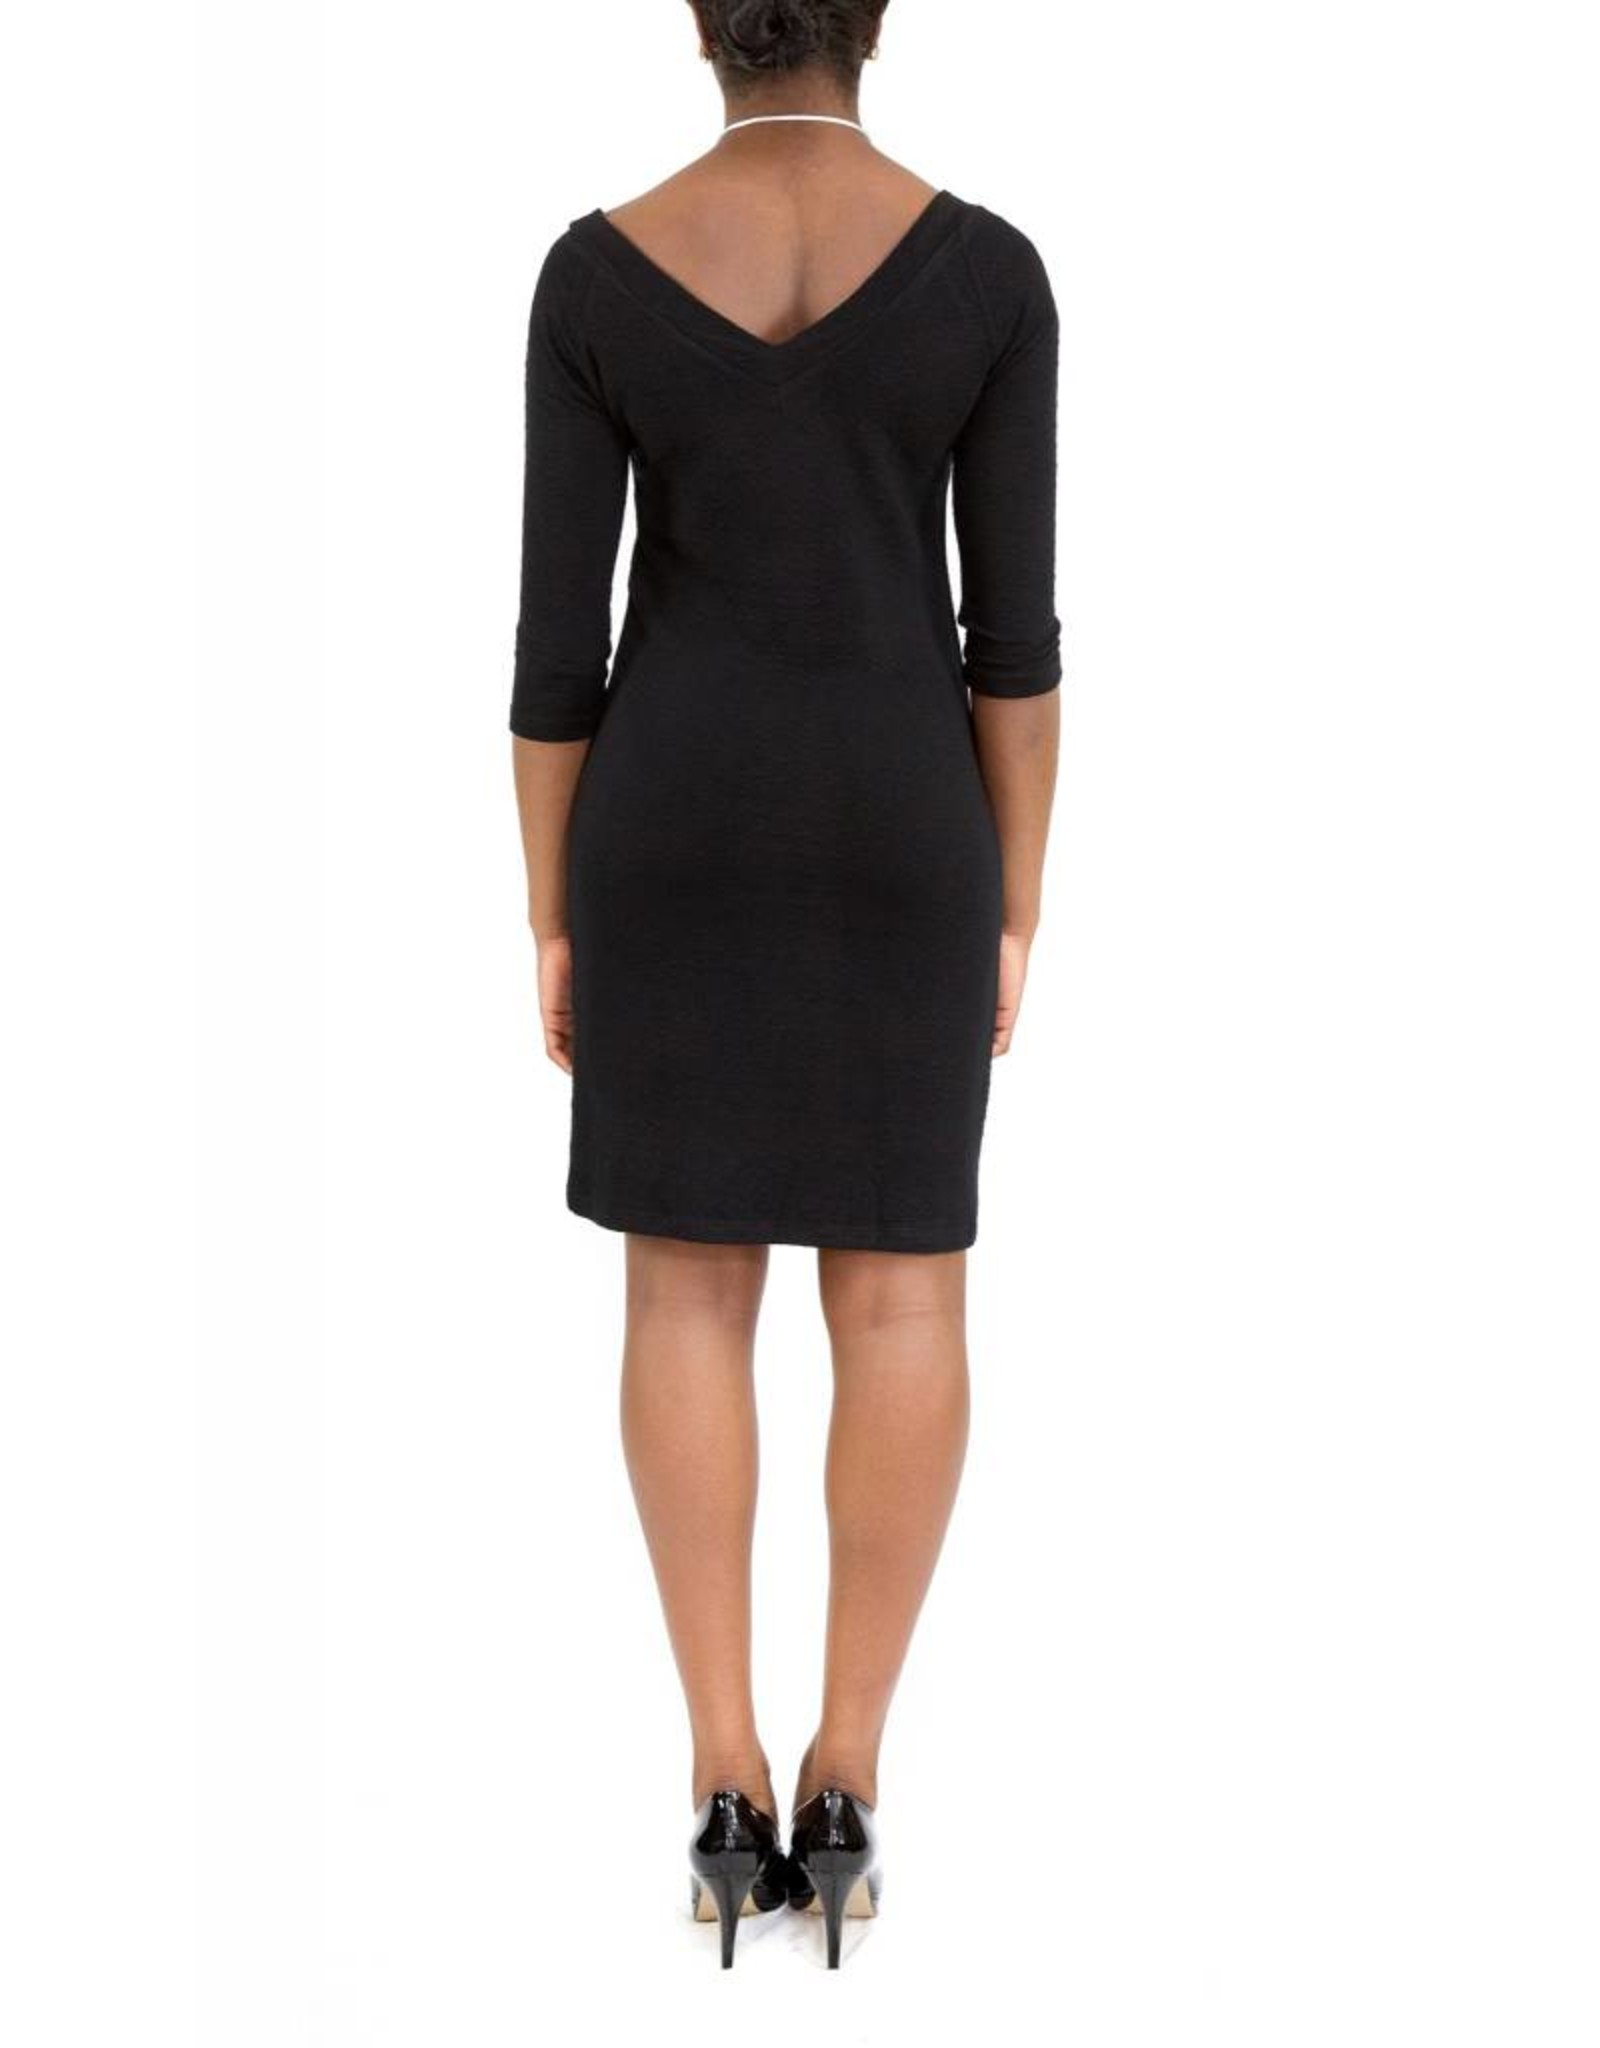 Hunter Dress Black V-Neck